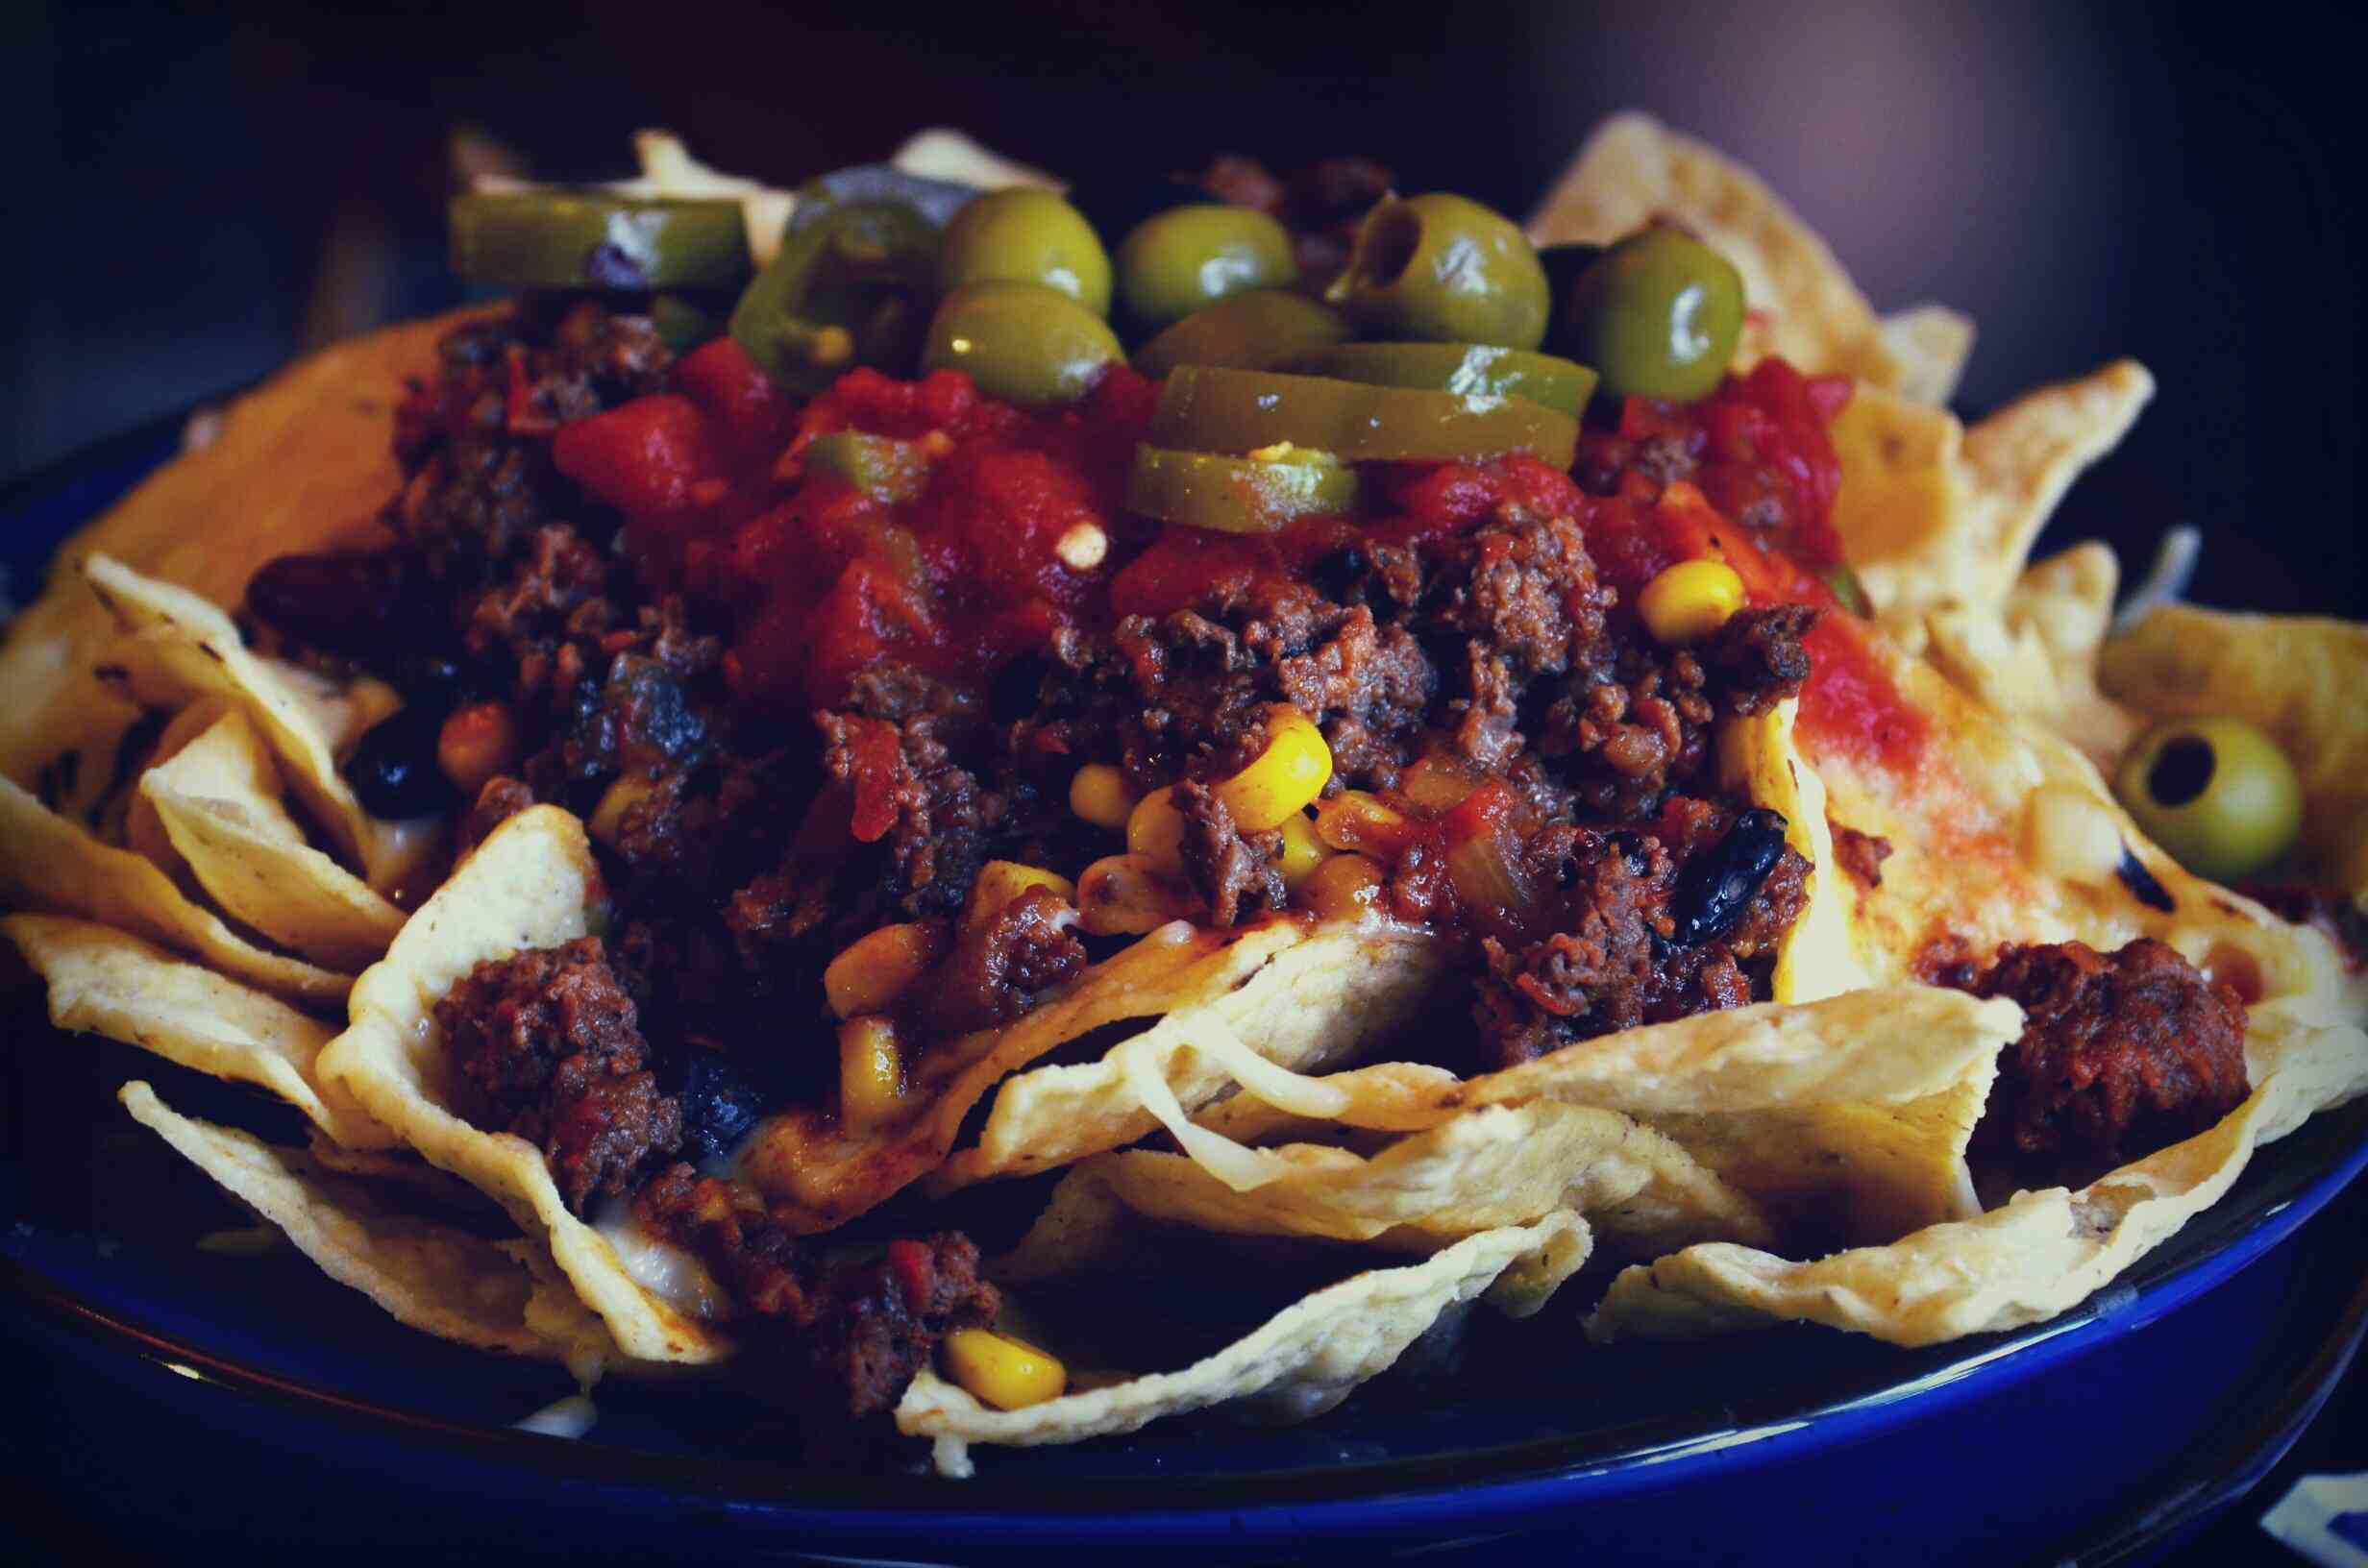 Nachos with meat, olives, peppers, and tomatoes.